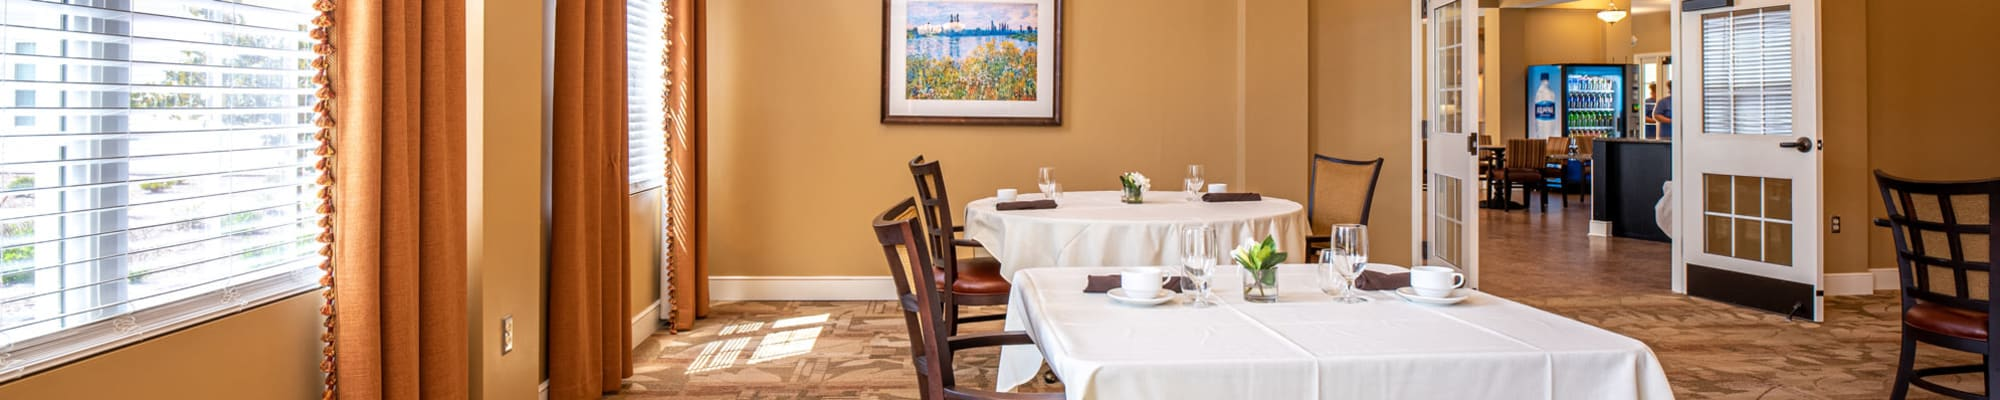 Dining at Harmony at Hope Mills in Fayetteville, North Carolina